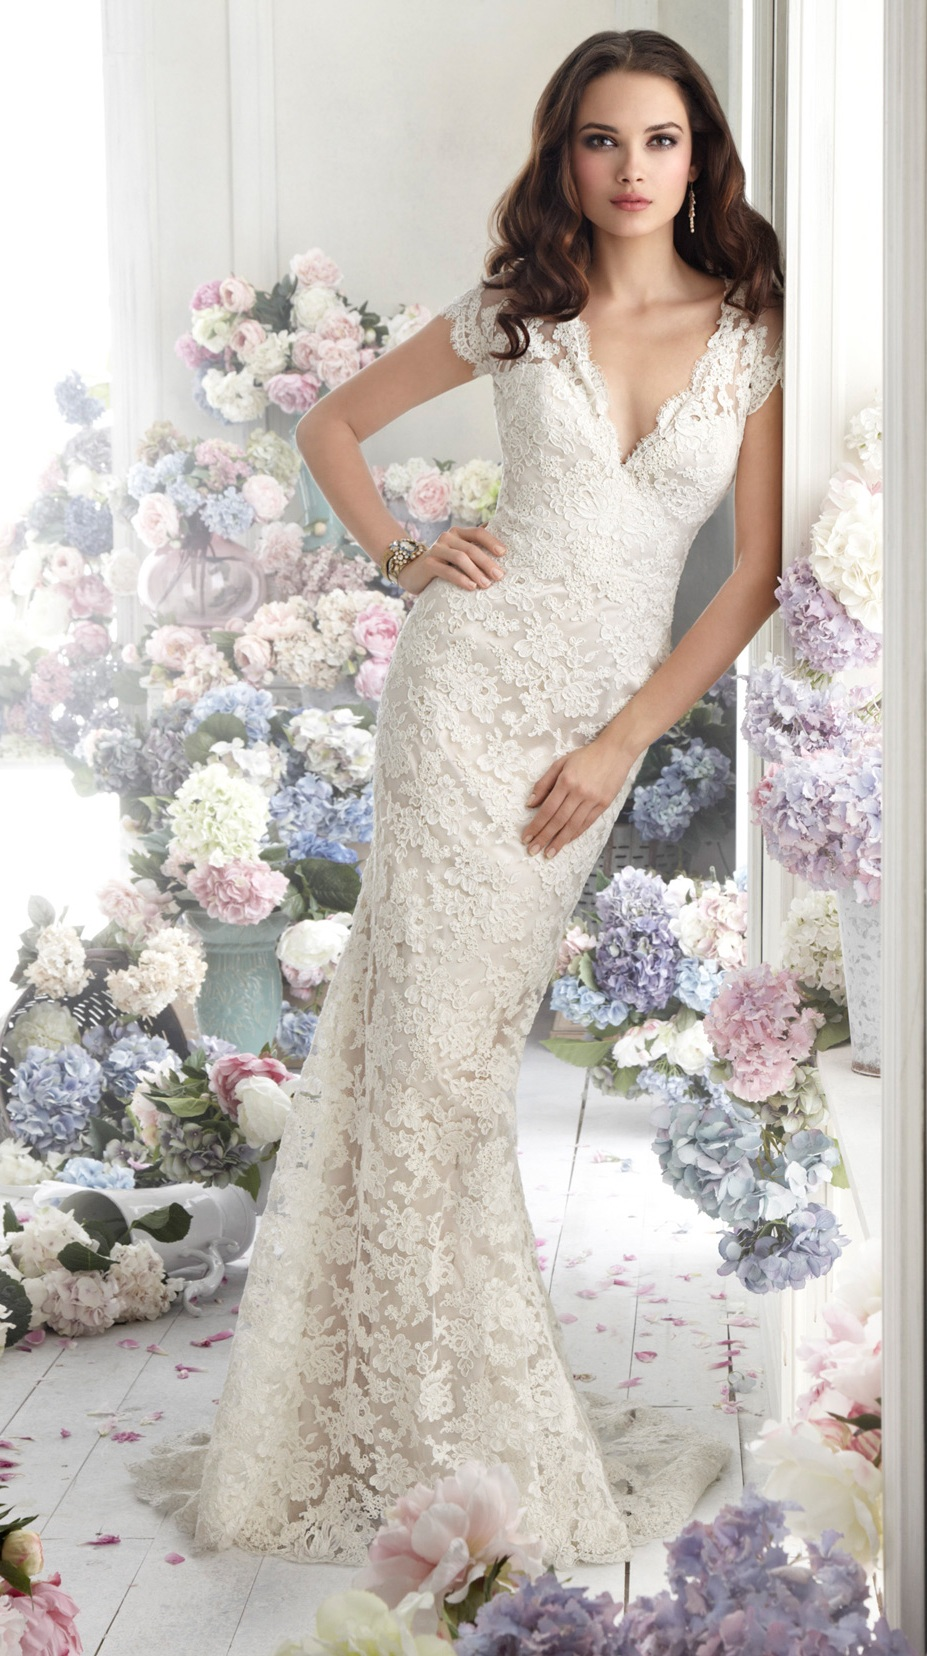 Marvellous Ivory Wedding Dresses